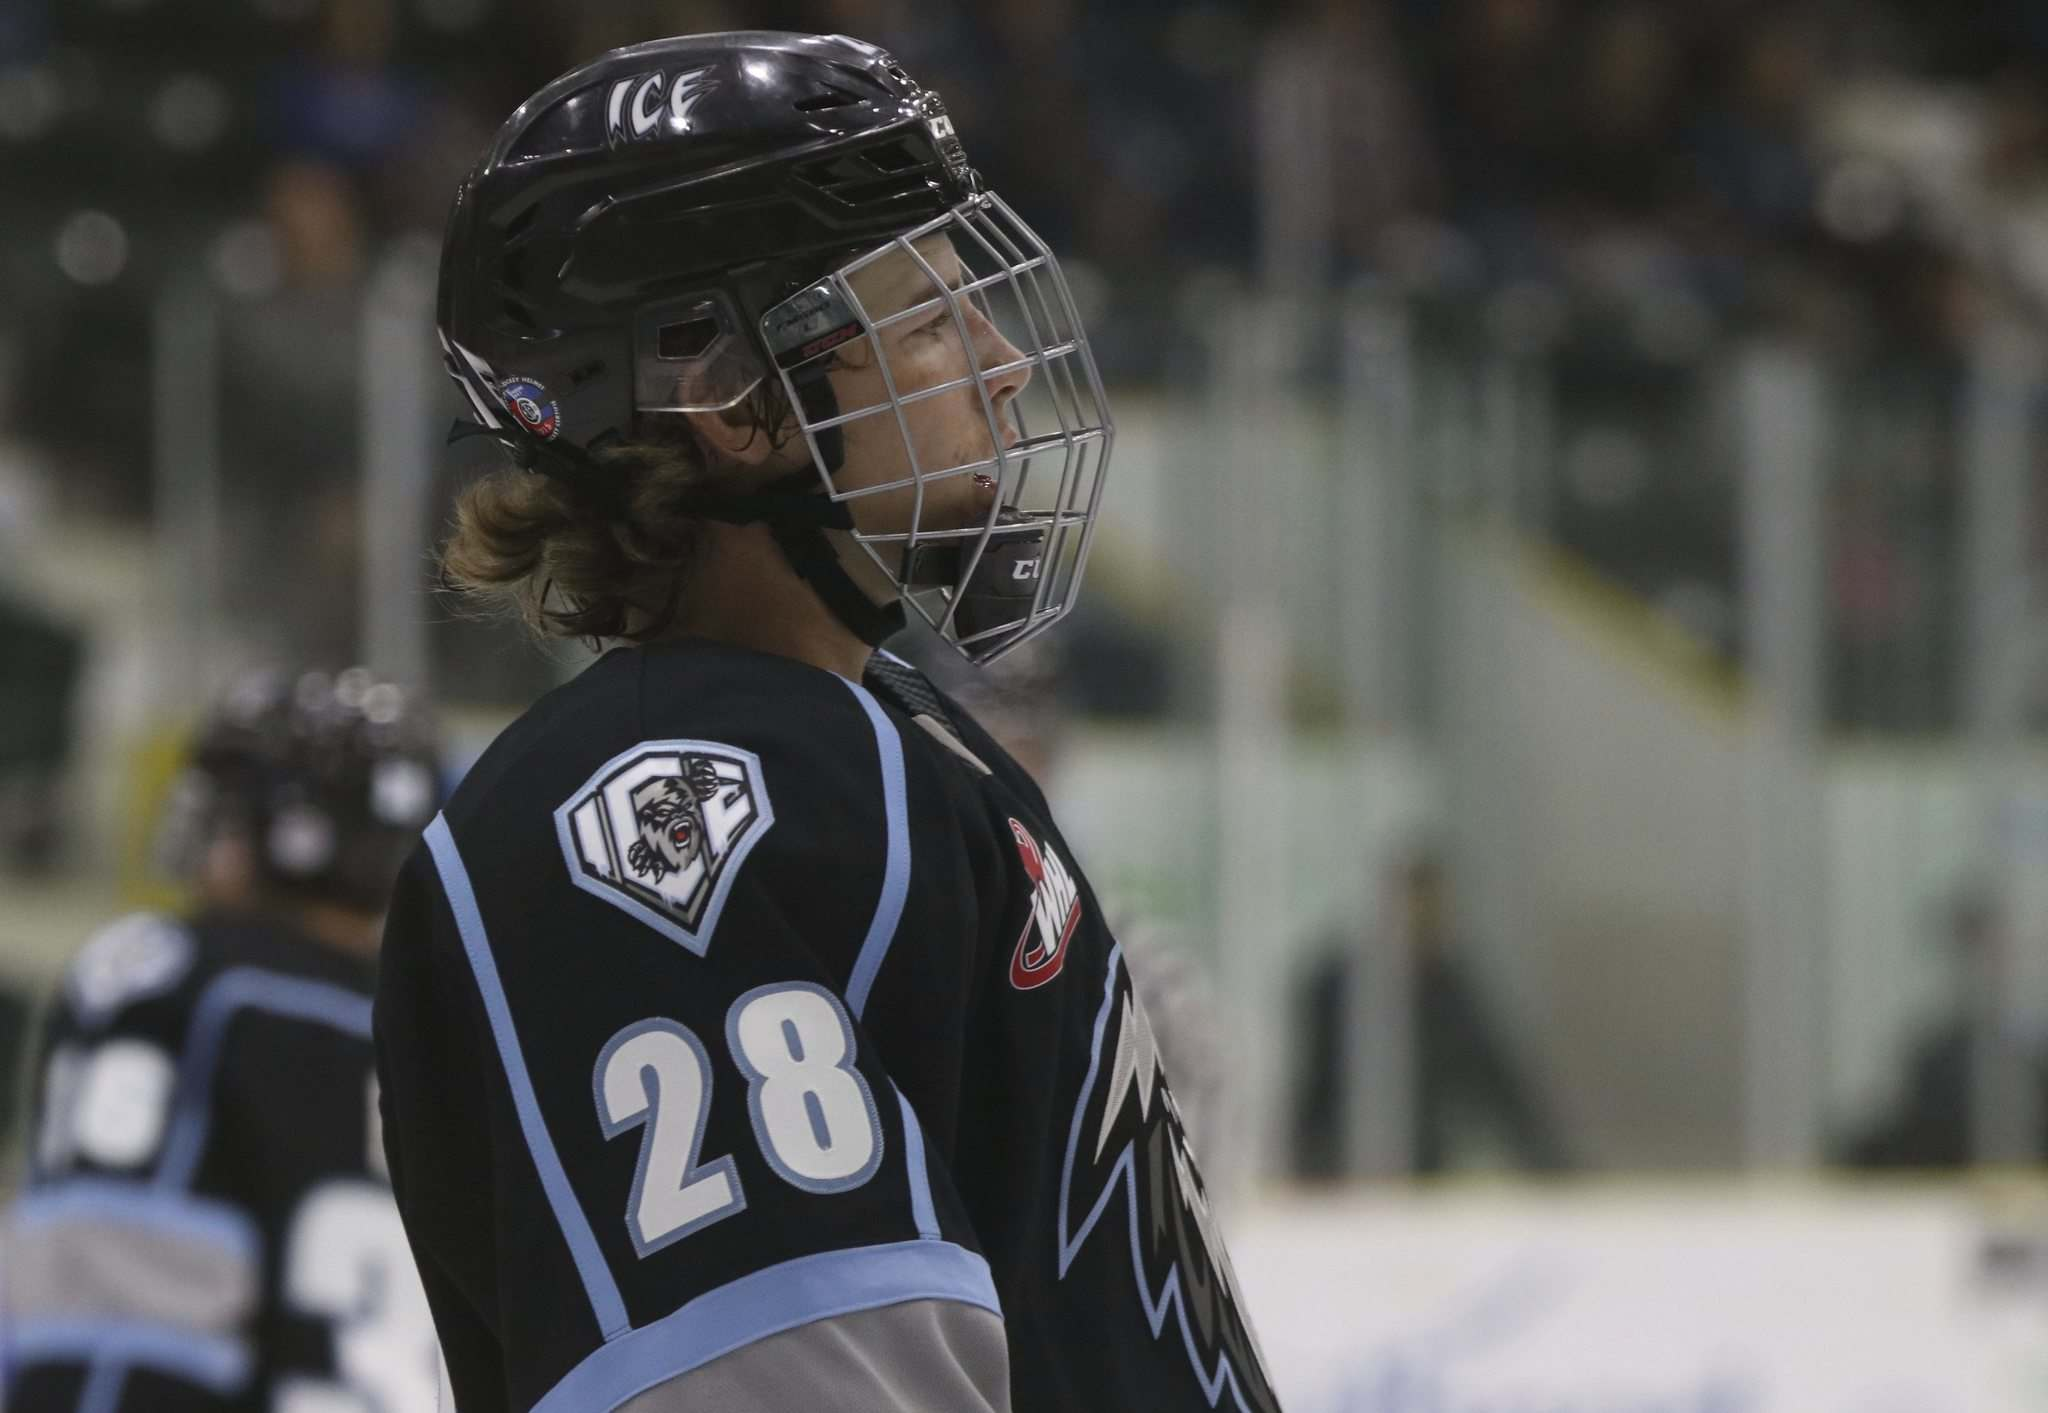 Conor is preparing for his second season as a member the WHL's Winnipeg Ice. He is likely a first-round pick in the 2022 NHL Draft. (Perry Bergson / The Brandon Sun files)